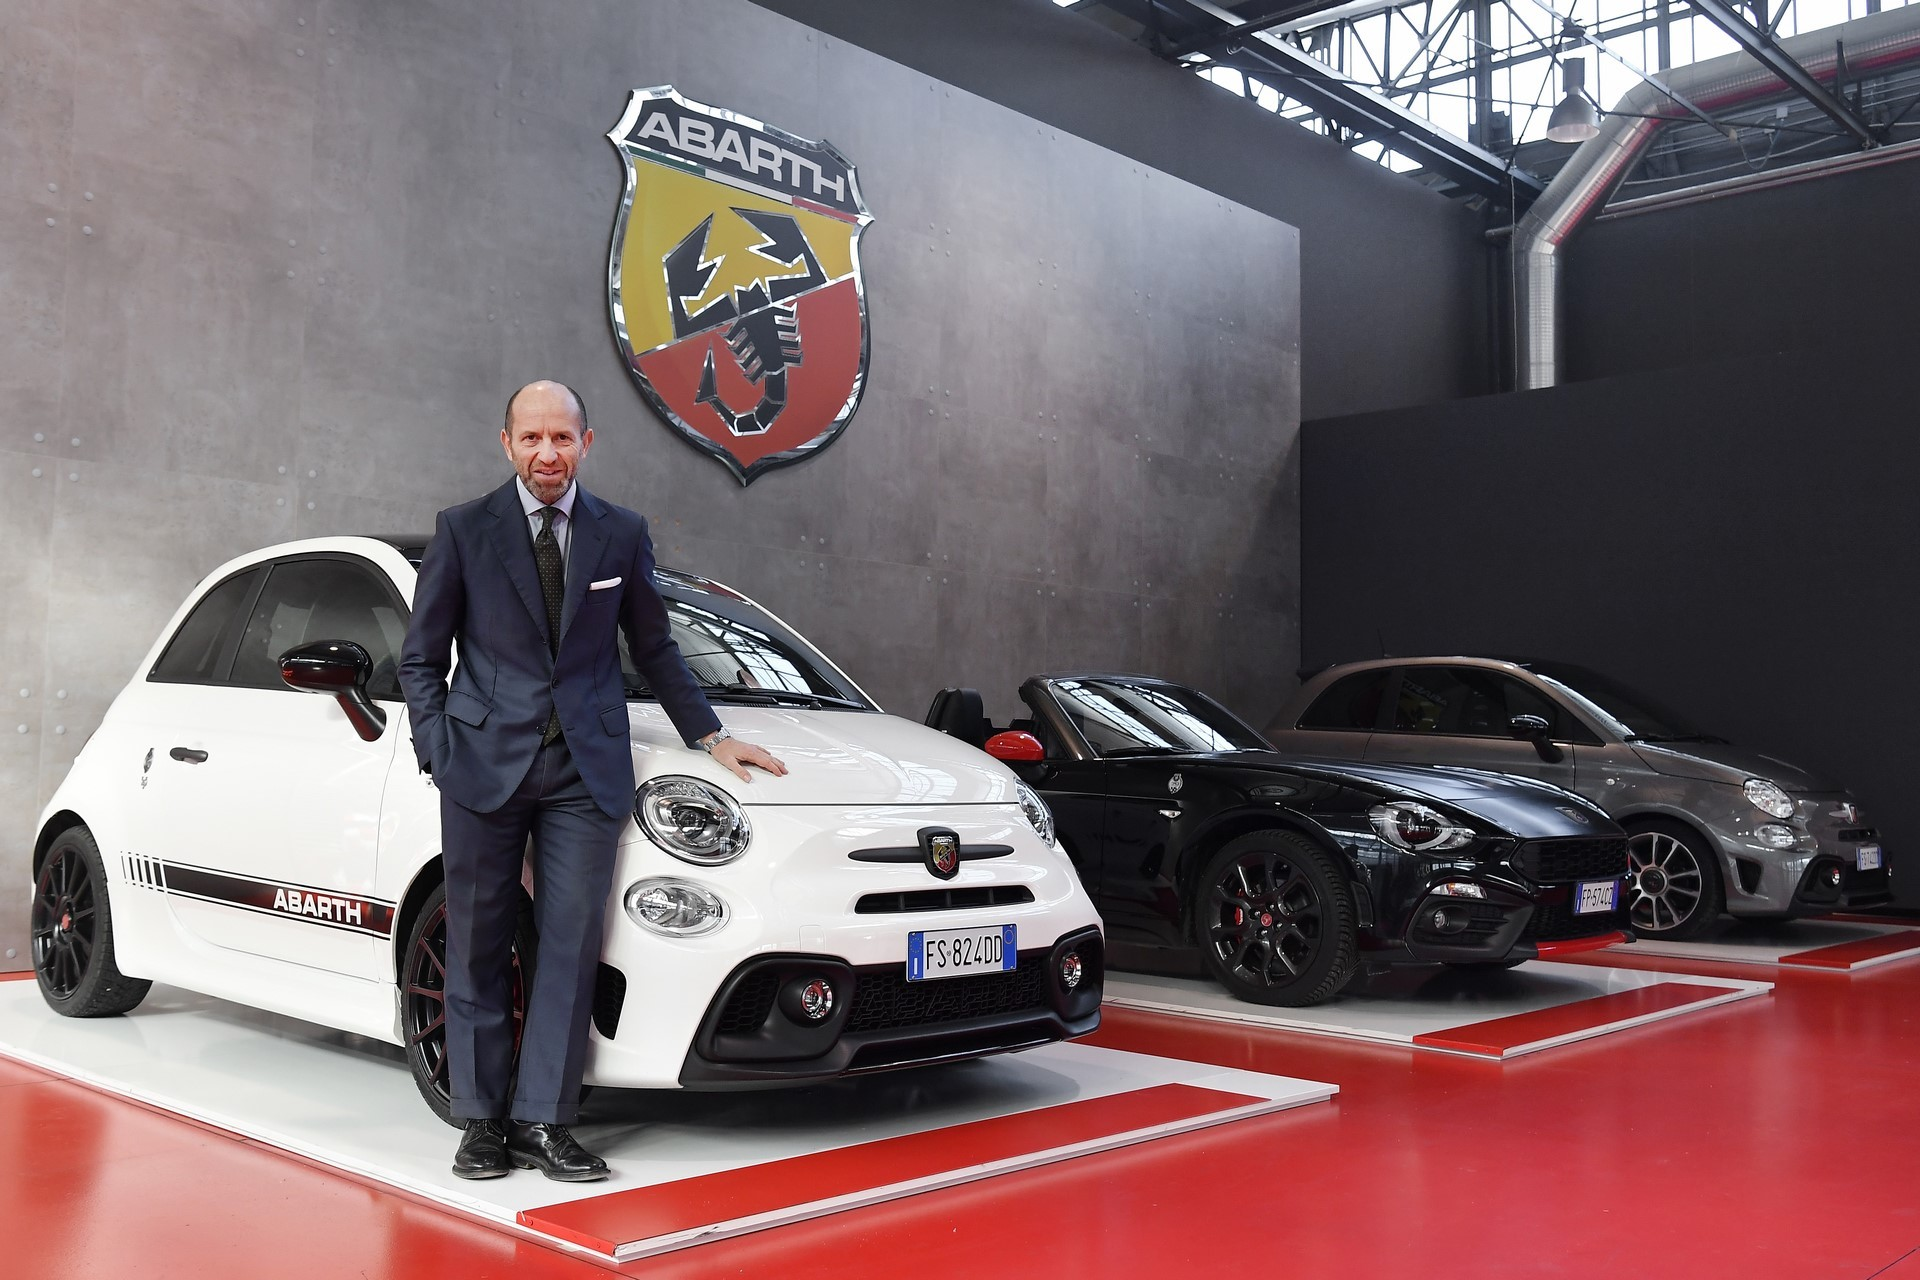 Luca Napolitano Head of EMEA Fiat & Abarth Brands